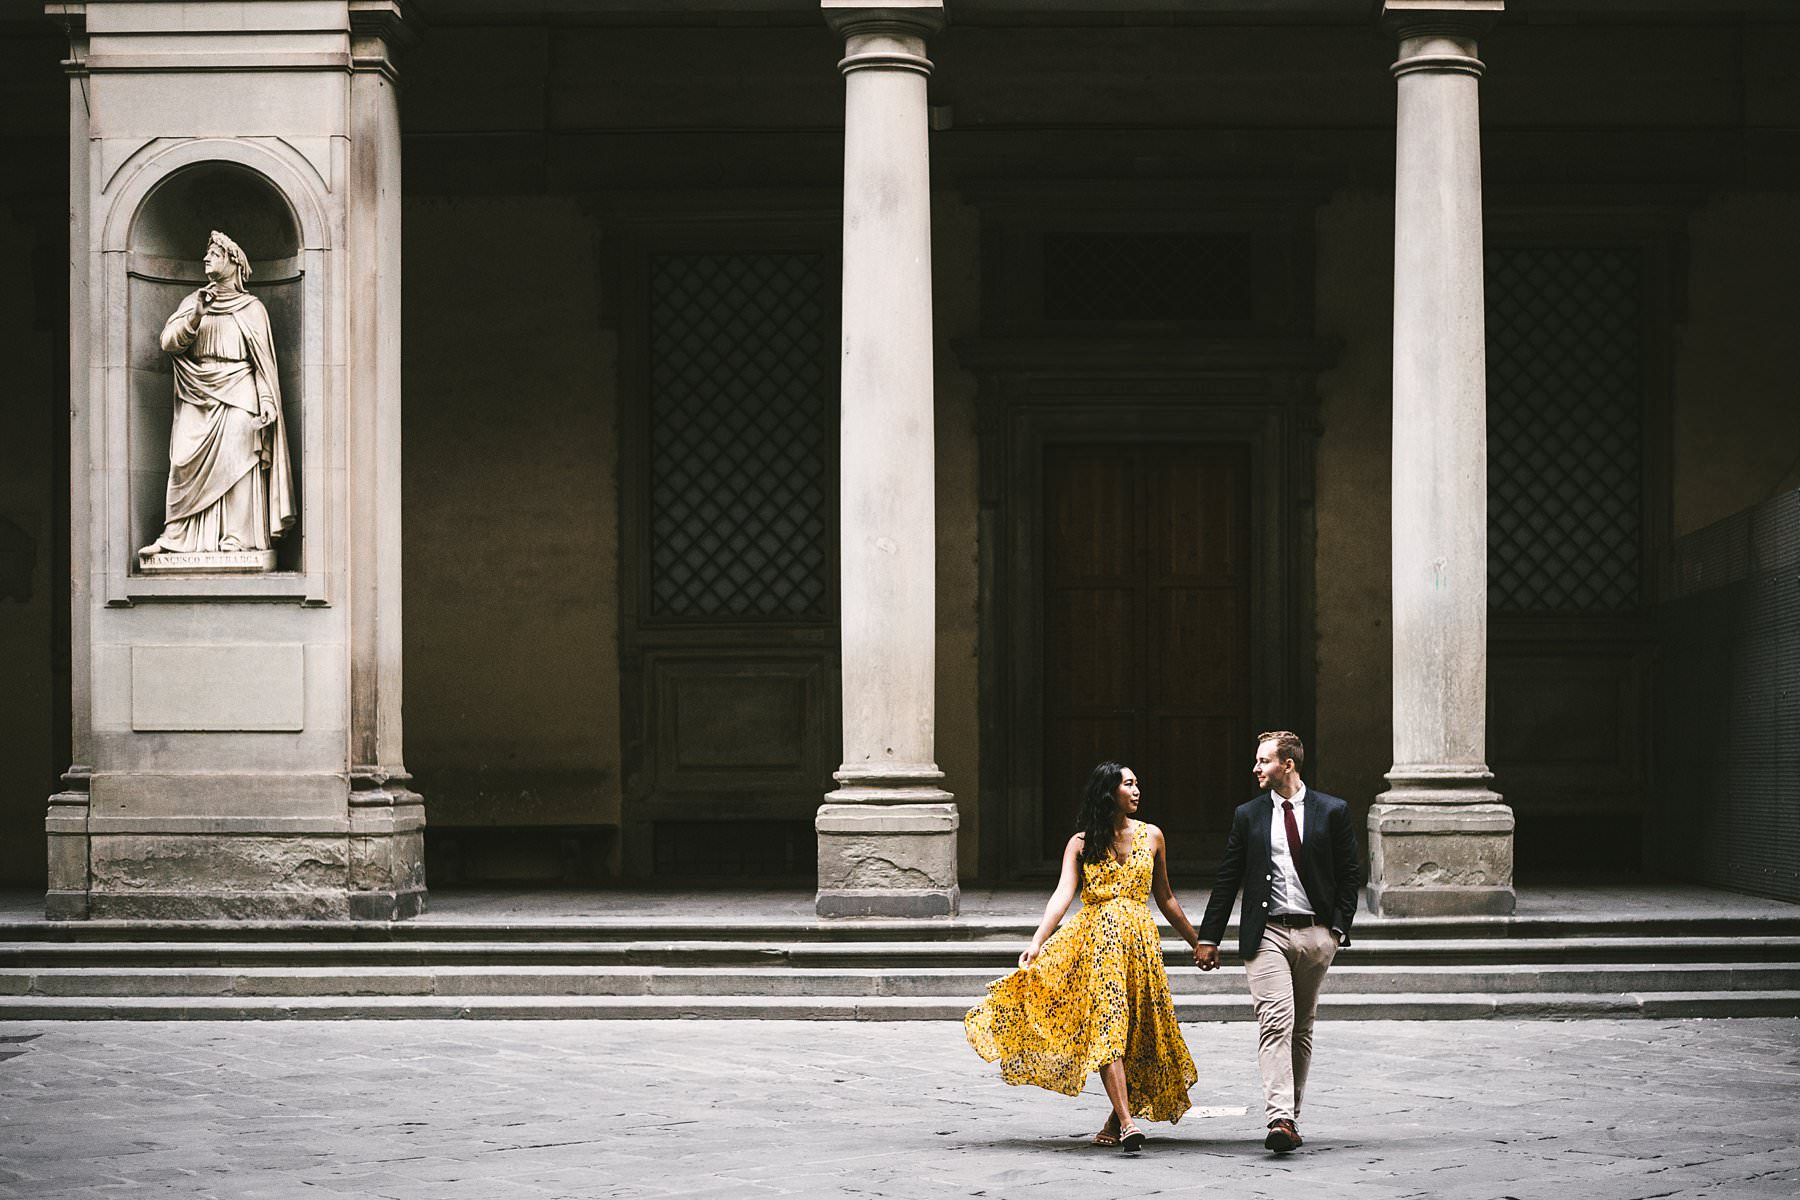 Angela and Max's surprise marriage proposal followed by a sweet engagement photoshoot in Florence! We snapped pictures all around the heart of the city, starting from the surroundings of San Miniato al Monte itself and continuing to Ponte Vecchio, Palazzo Vecchio and Uffizi Gallery. The warm light of the day matched perfectly with the color of Angela's dress, and with the bright smile of both these guys. This is surely a holiday they will remember forever, don't you think? If you're considering the idea of a surprise marriage proposal too, don't hesitate to contact me: I will be able to help you make the event truly unforgettable